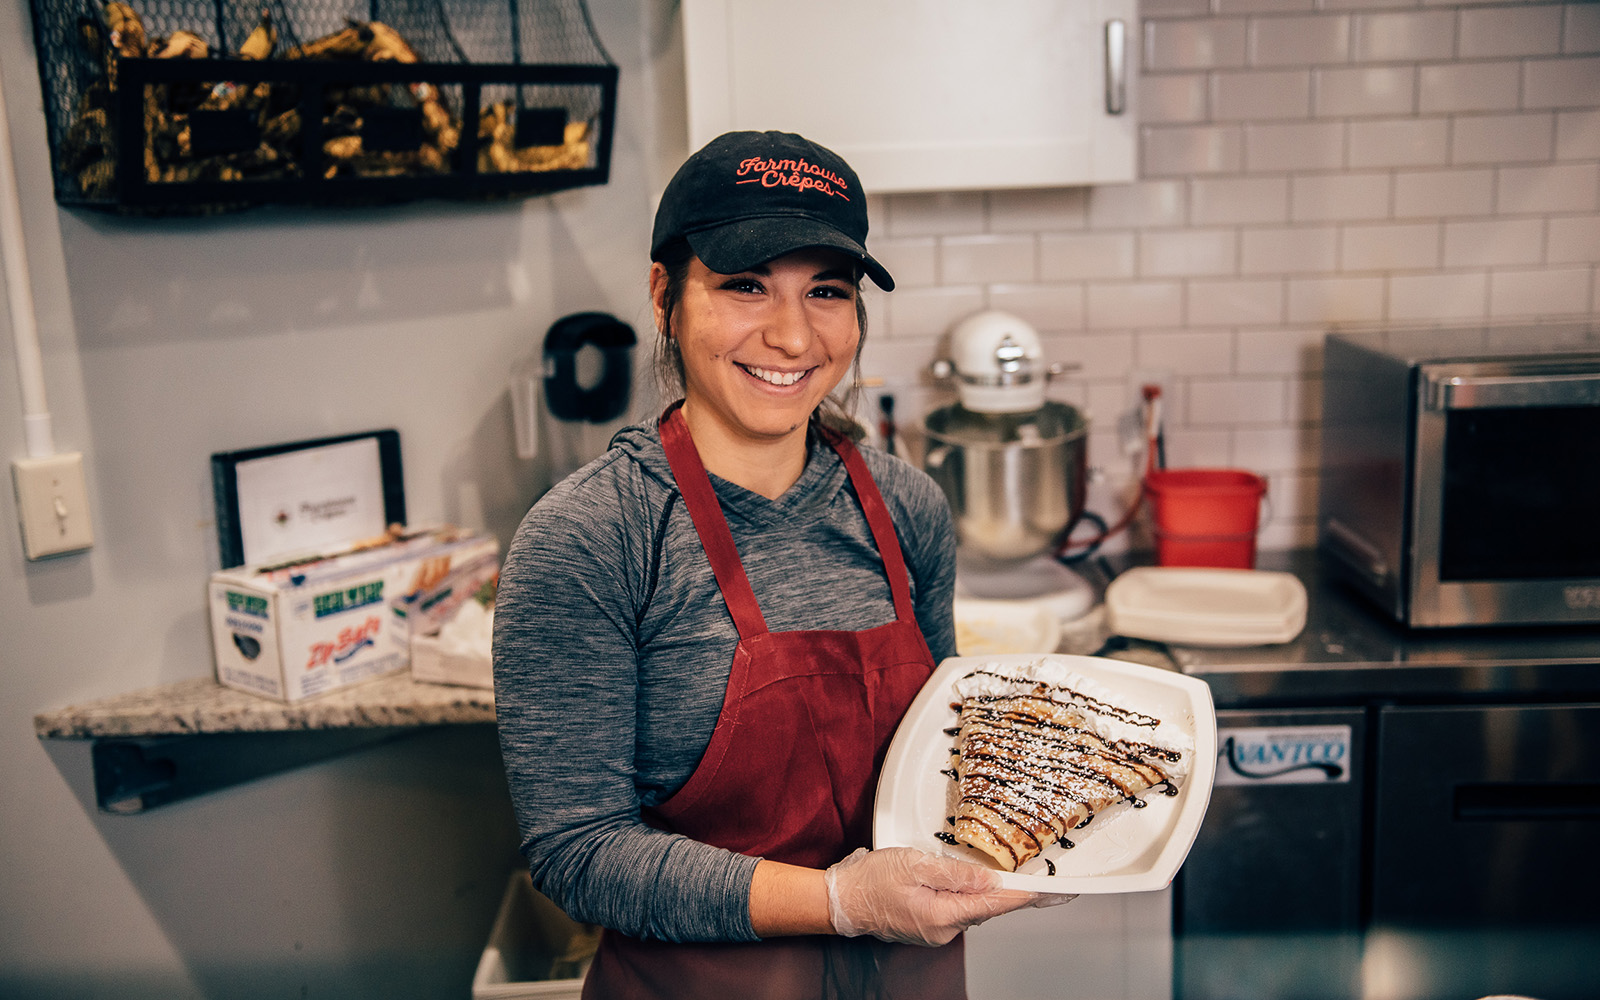 Ashley DeCarlo '19 (above) shows off her crepe-making skills at Farmhouse Crepes in Downtown Storrs. Ashley also handles their social media in addition to her regular duties, plus a job at Geezeo in Glastonbury, not to mention a full set of classes and cheerleading! (Nathan Oldham / UConn School of Business)